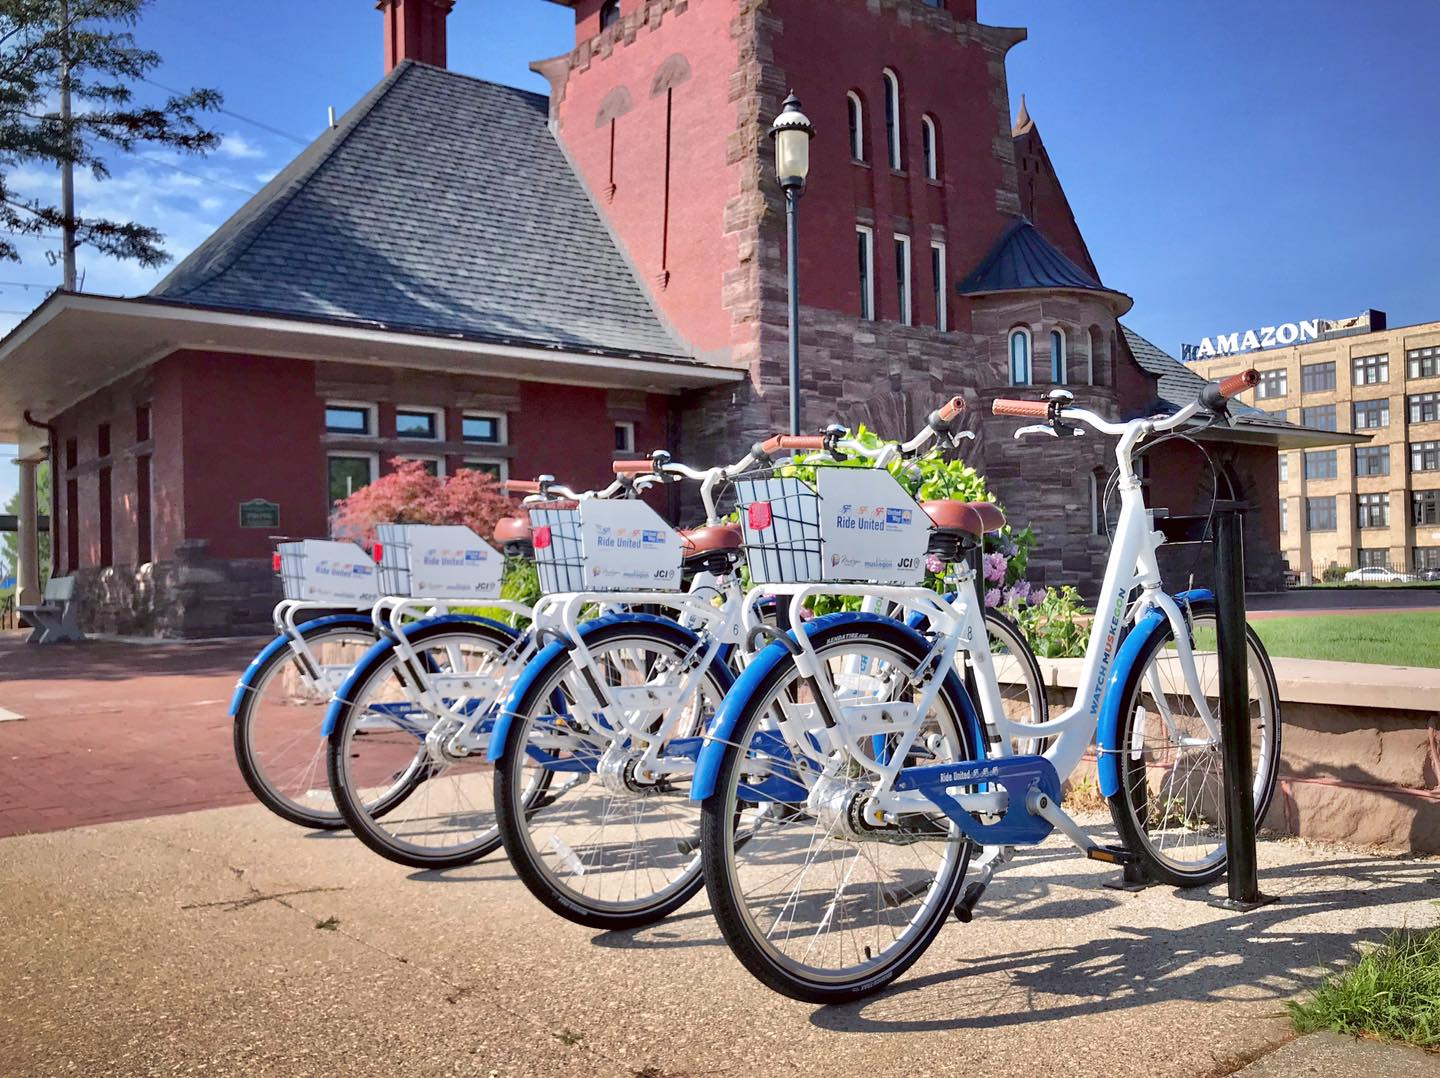 4 blue rental bikes lined up at bike rack in front of historic red brick building